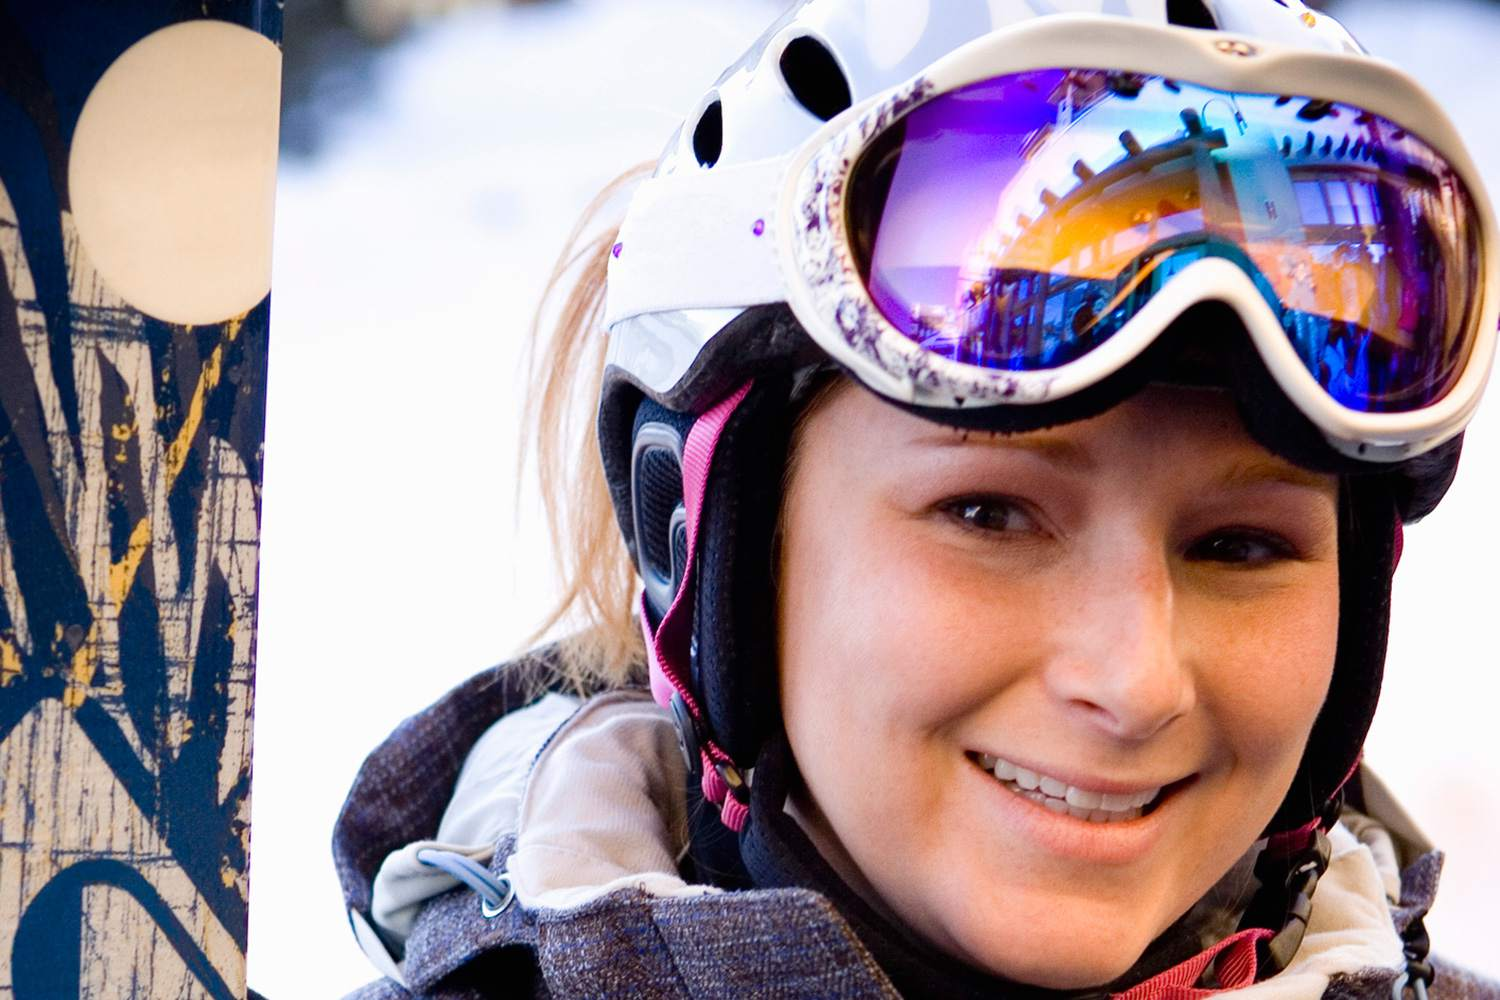 How To Choose The Right Lens Color For Your Ski Goggles